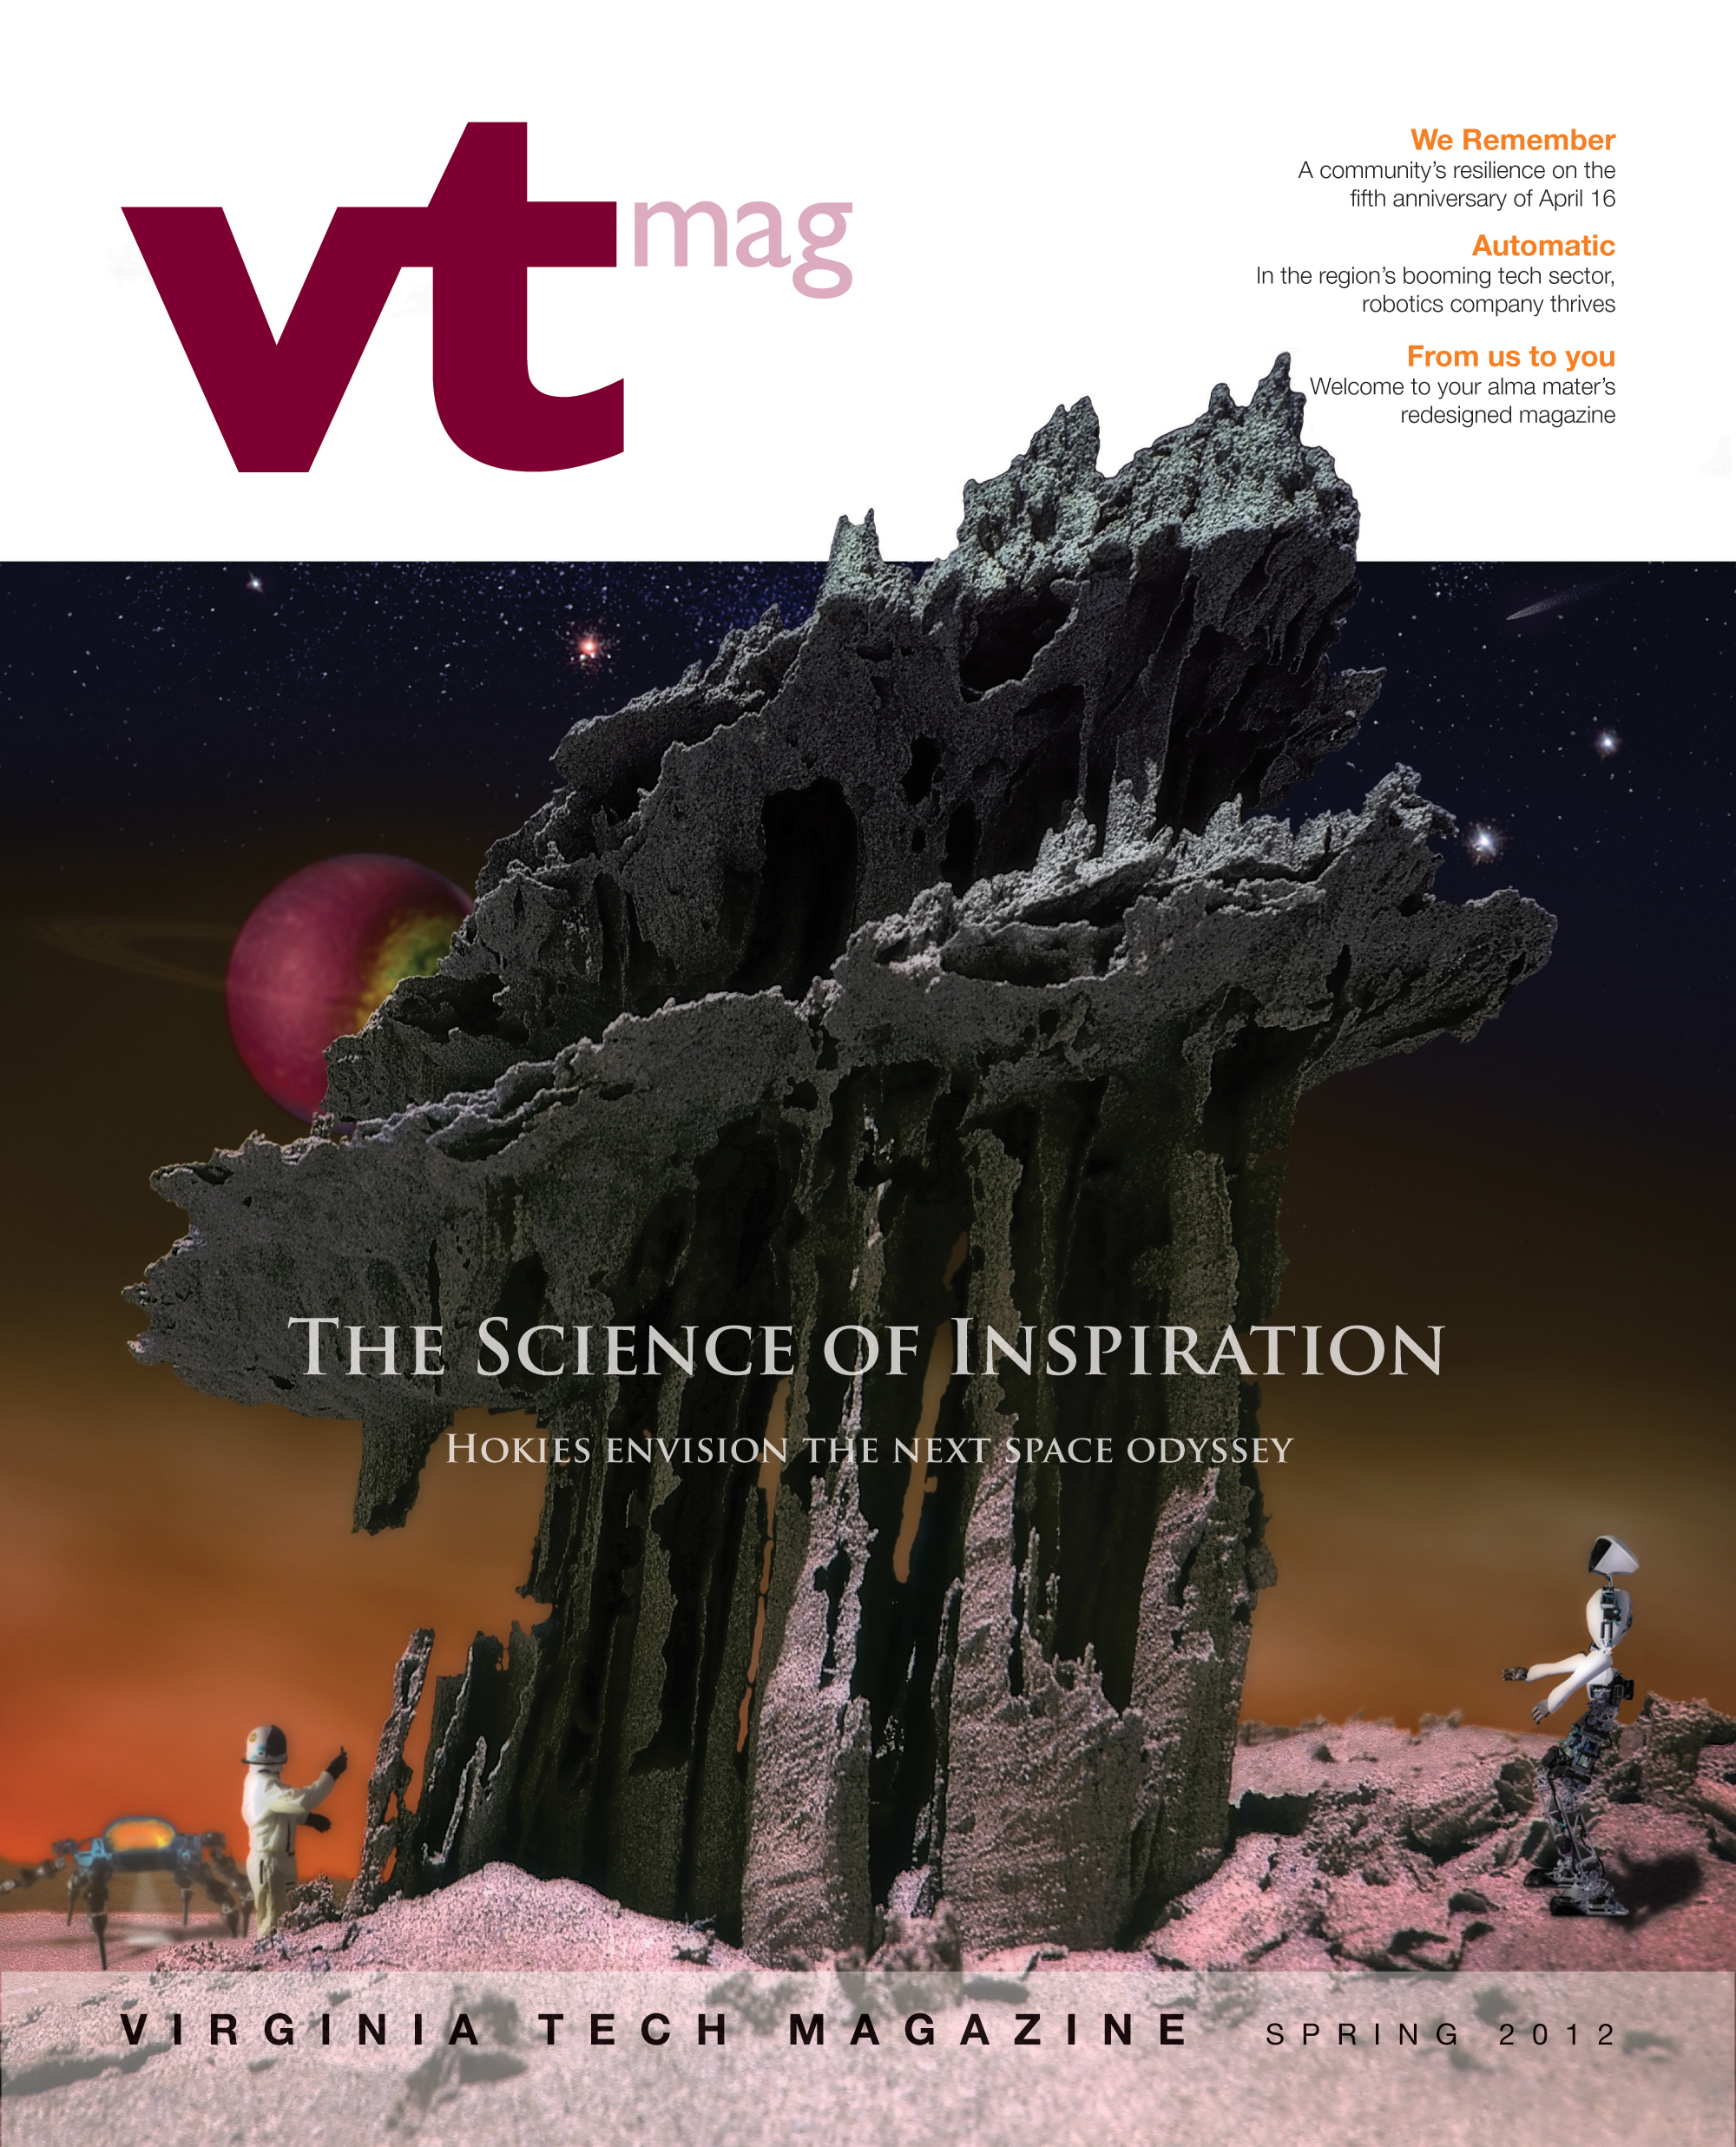 Virginia Tech Magazine, spring 2012